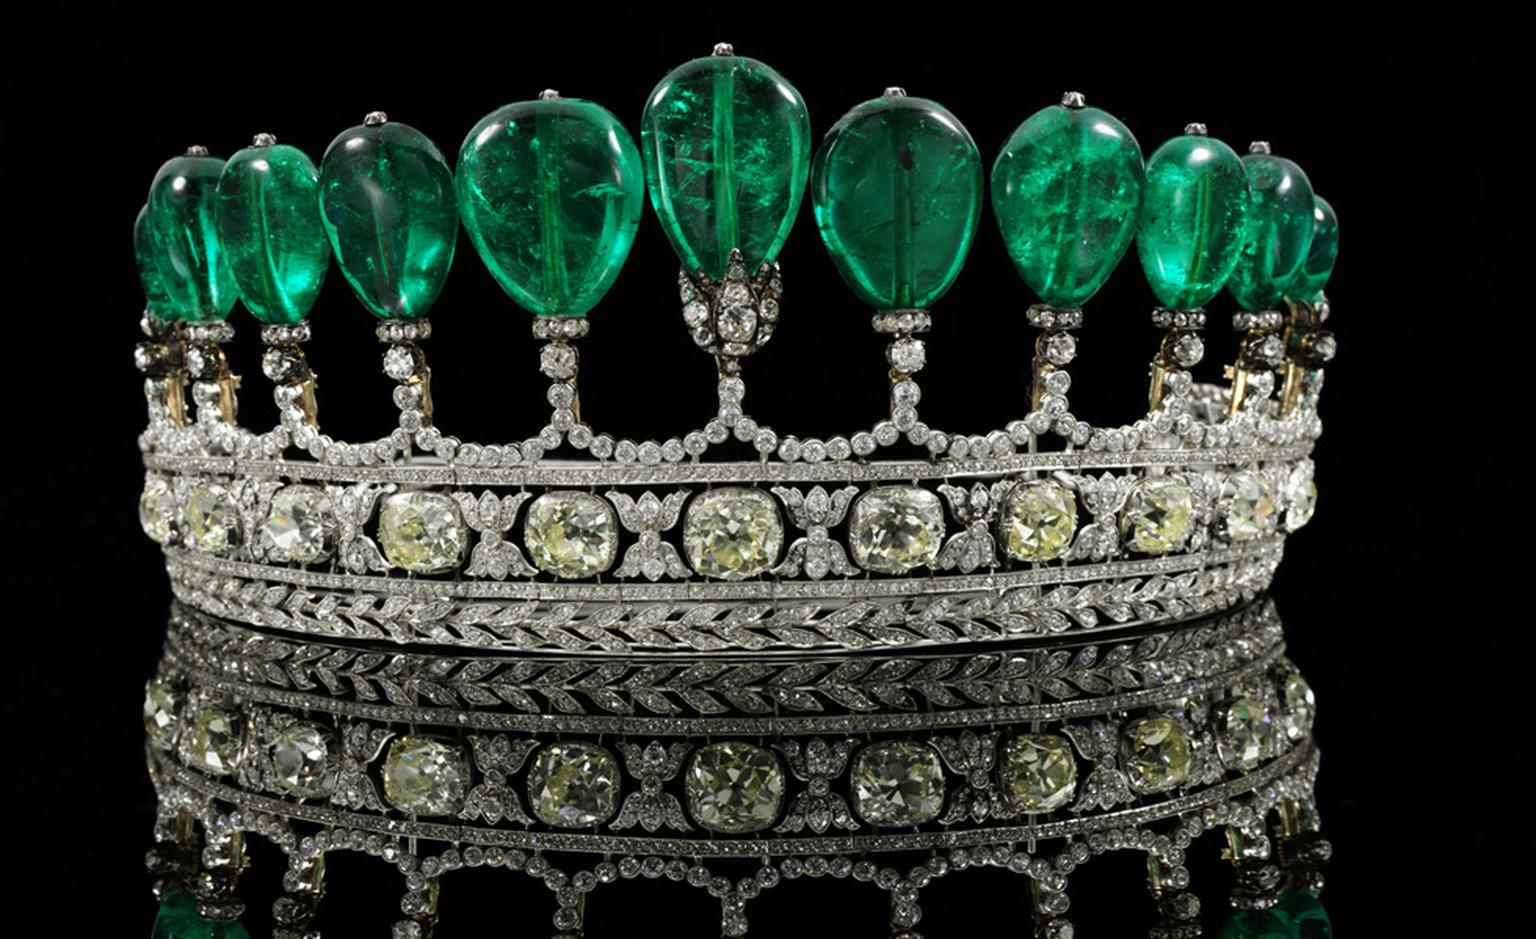 Emerald tiara circa 1900 to be auctioned by Sotheby's in Geneva on 17 May, from the collection of Princess Katharina Henckel von Donnersmarck.